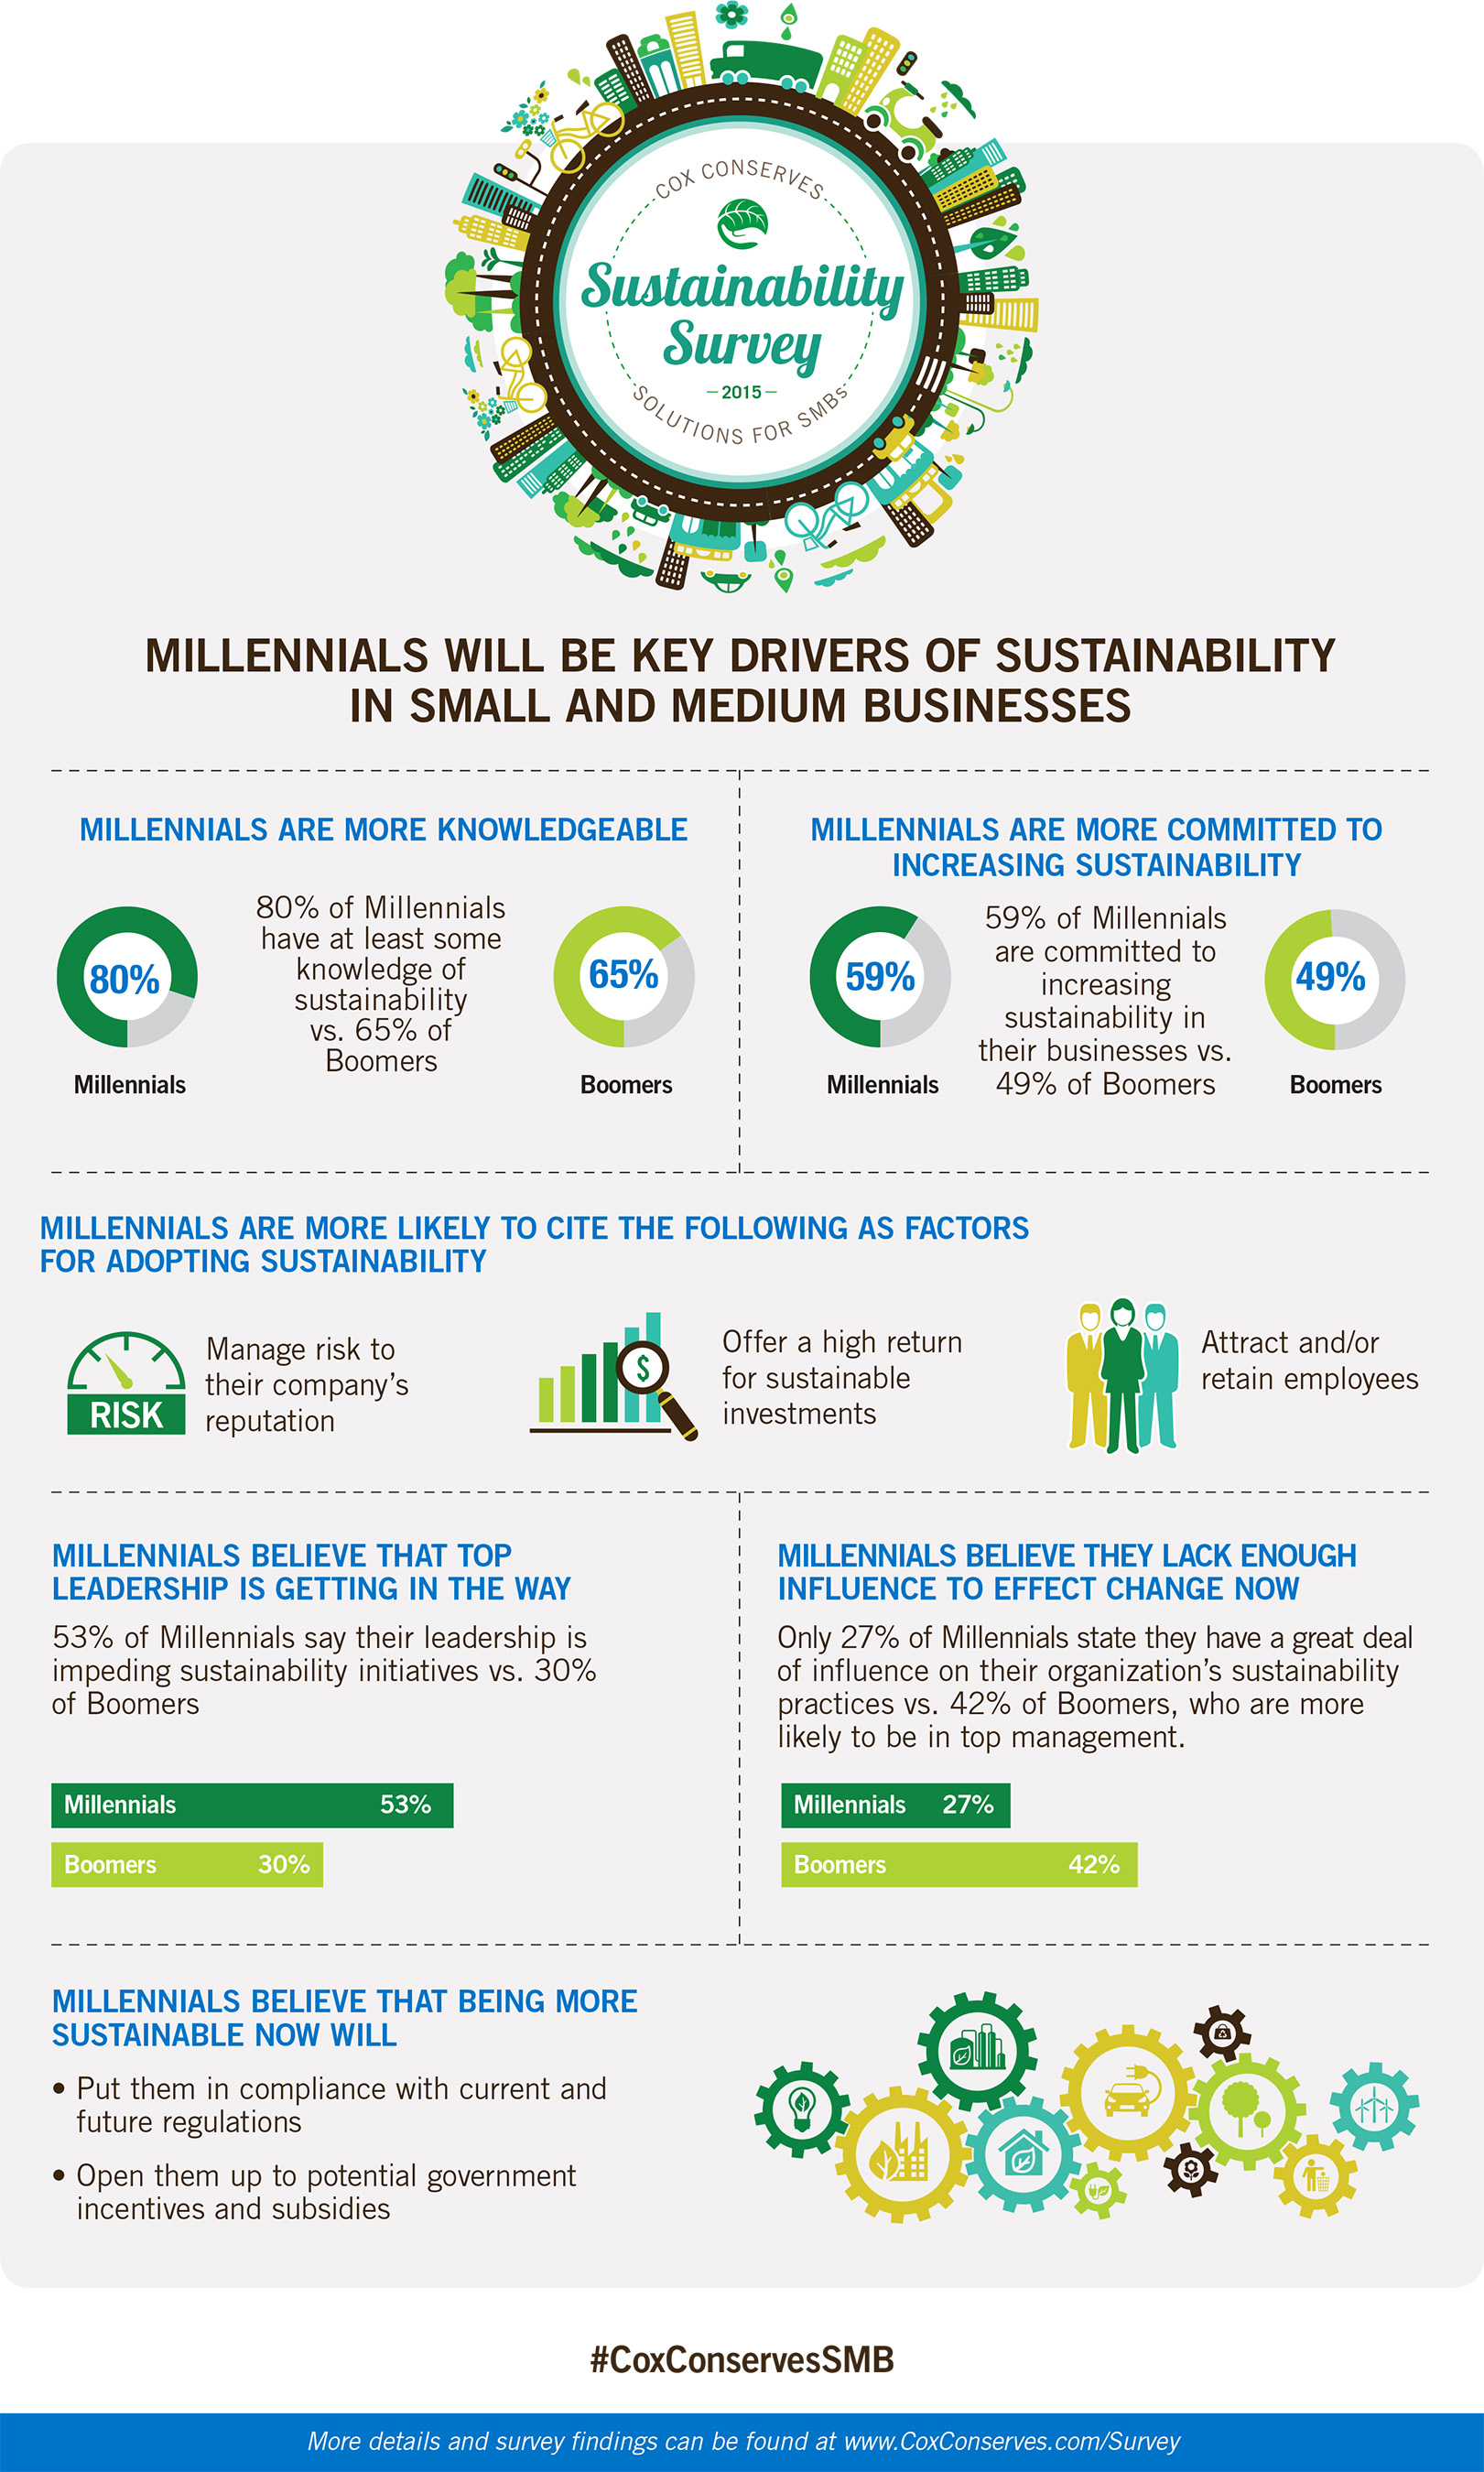 Millennials Will Be Key Drivers of Sustainability in Small and Medium Businesses.